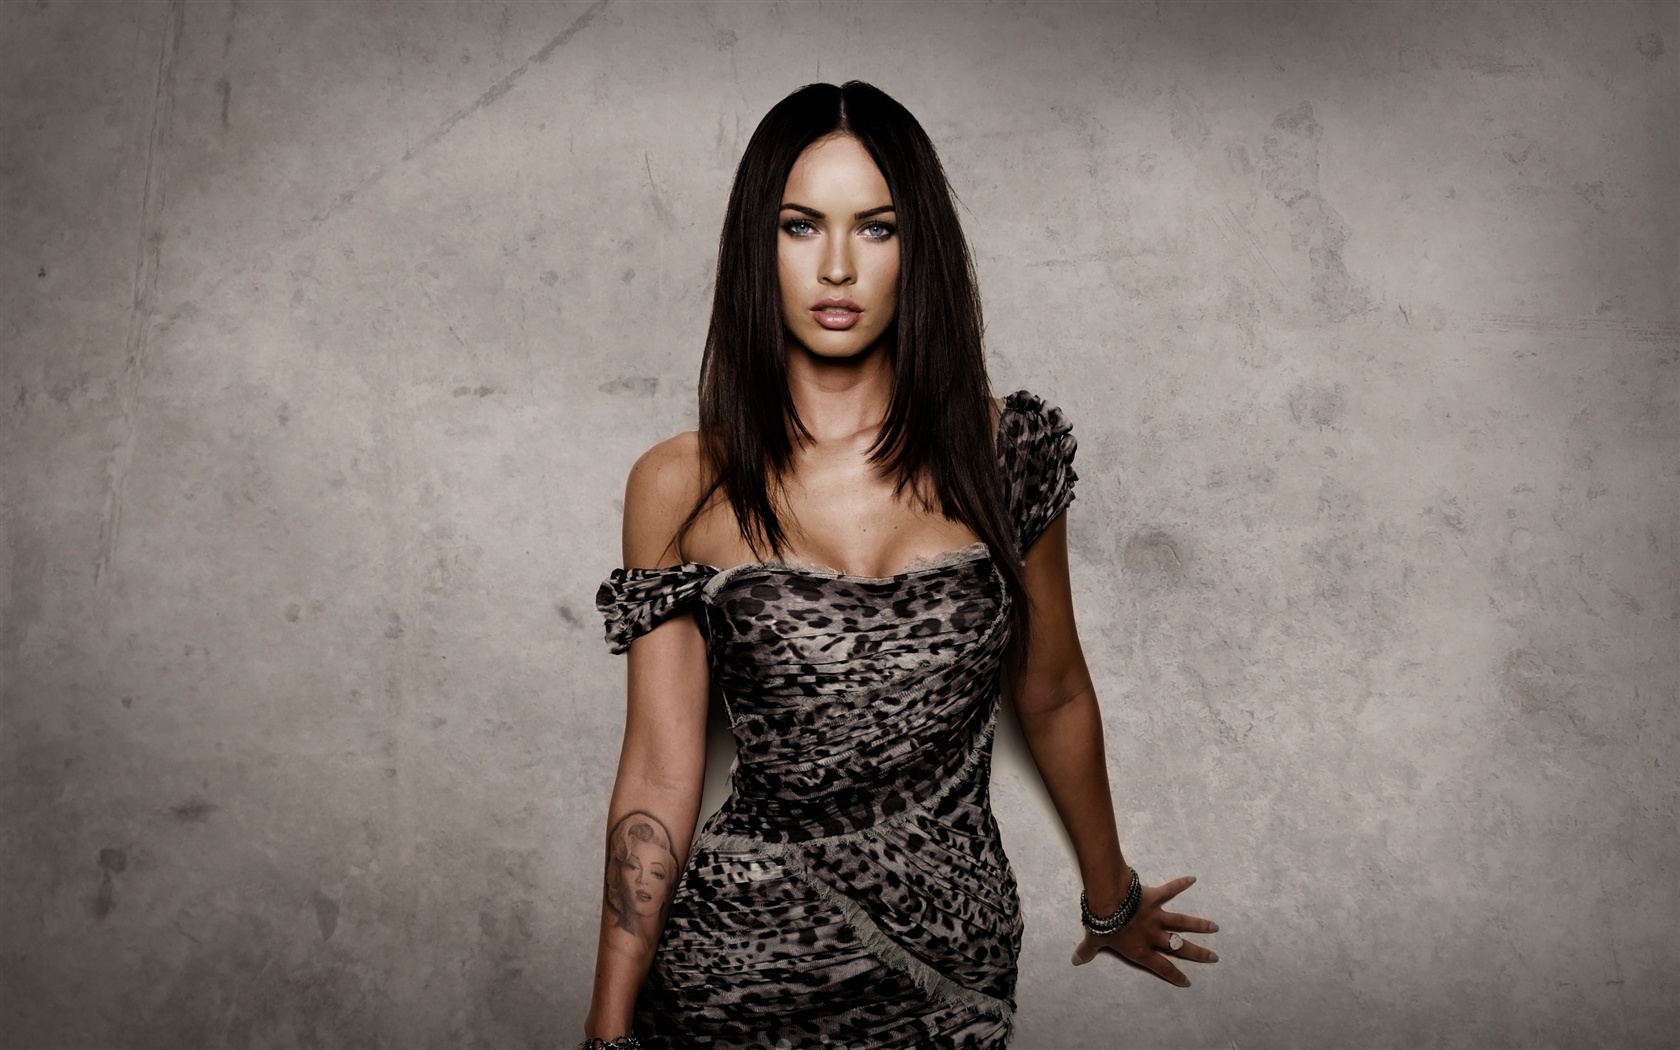 Megan Fox 06 wallpaper - 1680x1050